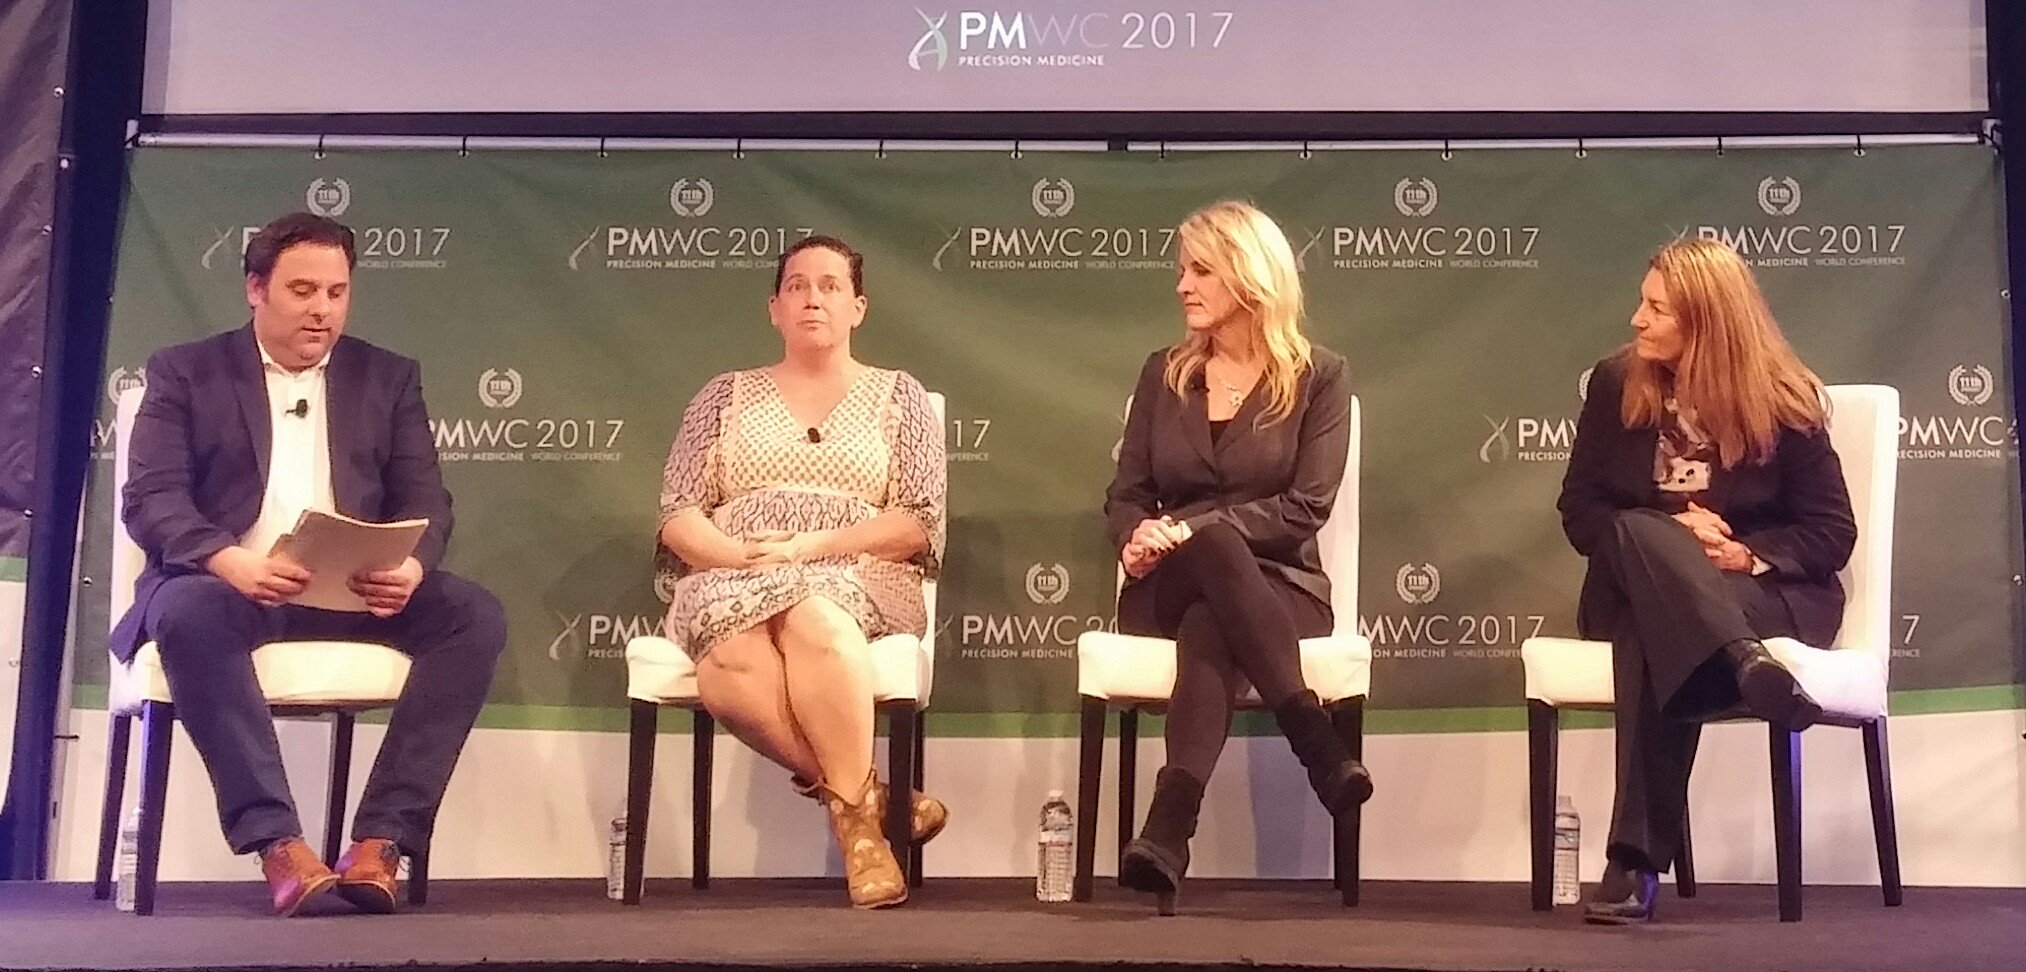 @GenomeWeb editor-in-chief Ed Winnick moderating panel on incentives for companion dx development #PMWC17 https://t.co/pK1OxwEmwj